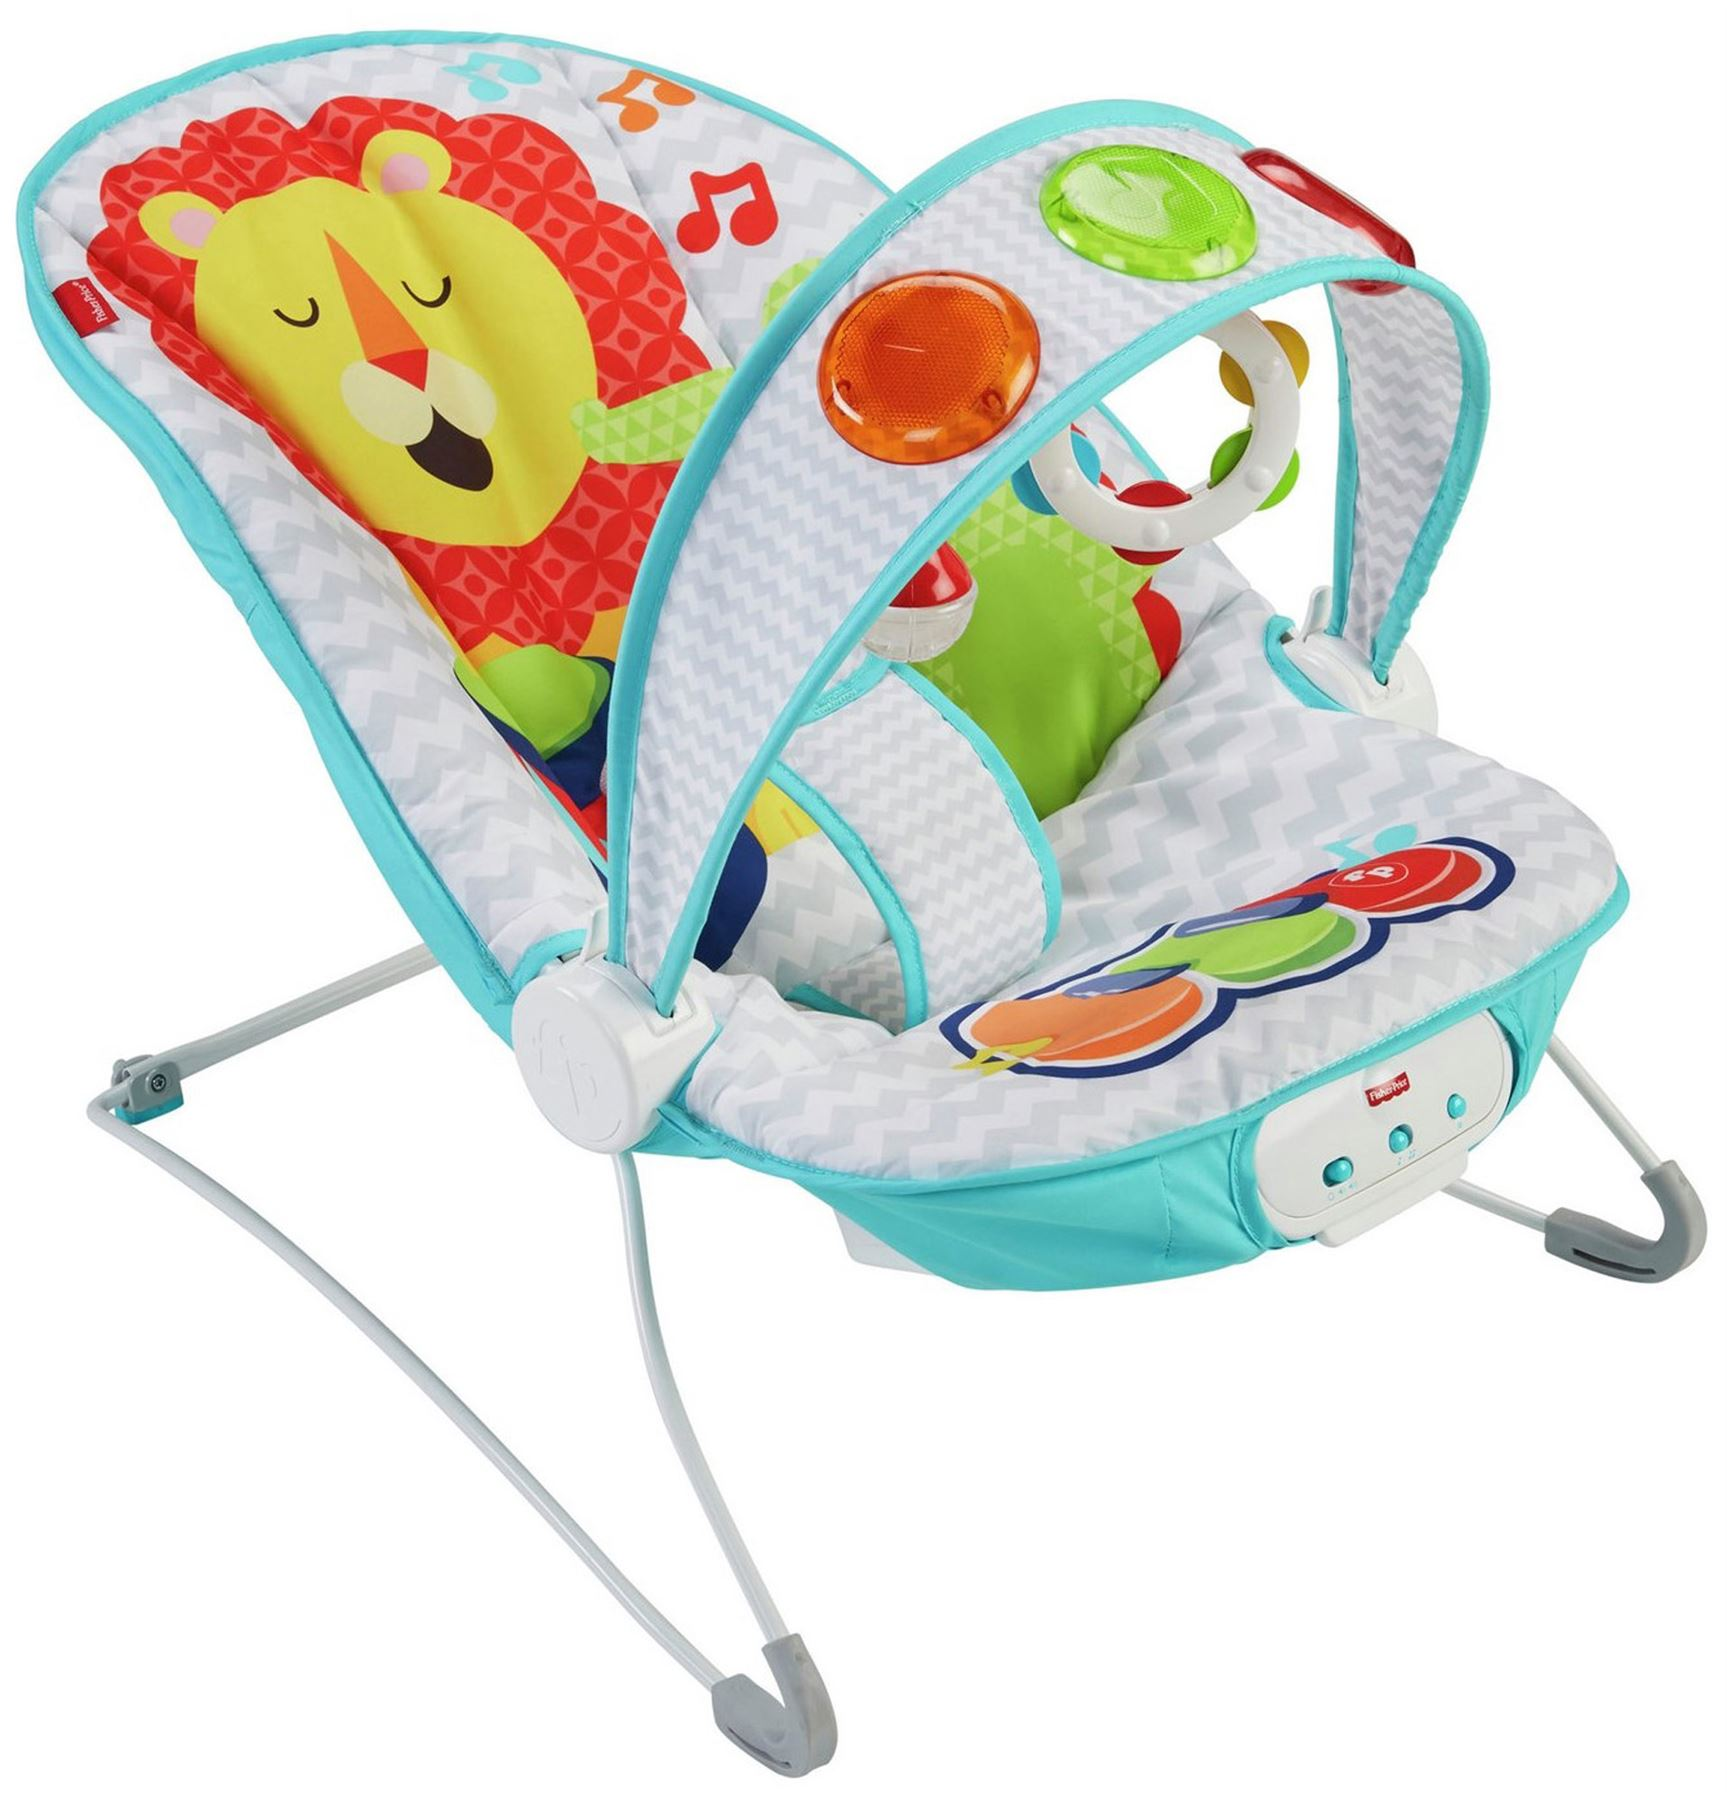 Bouncer Baby Details About Fisher Price Fisher Price Kick Play Bouncer Baby Rocker Bouncer